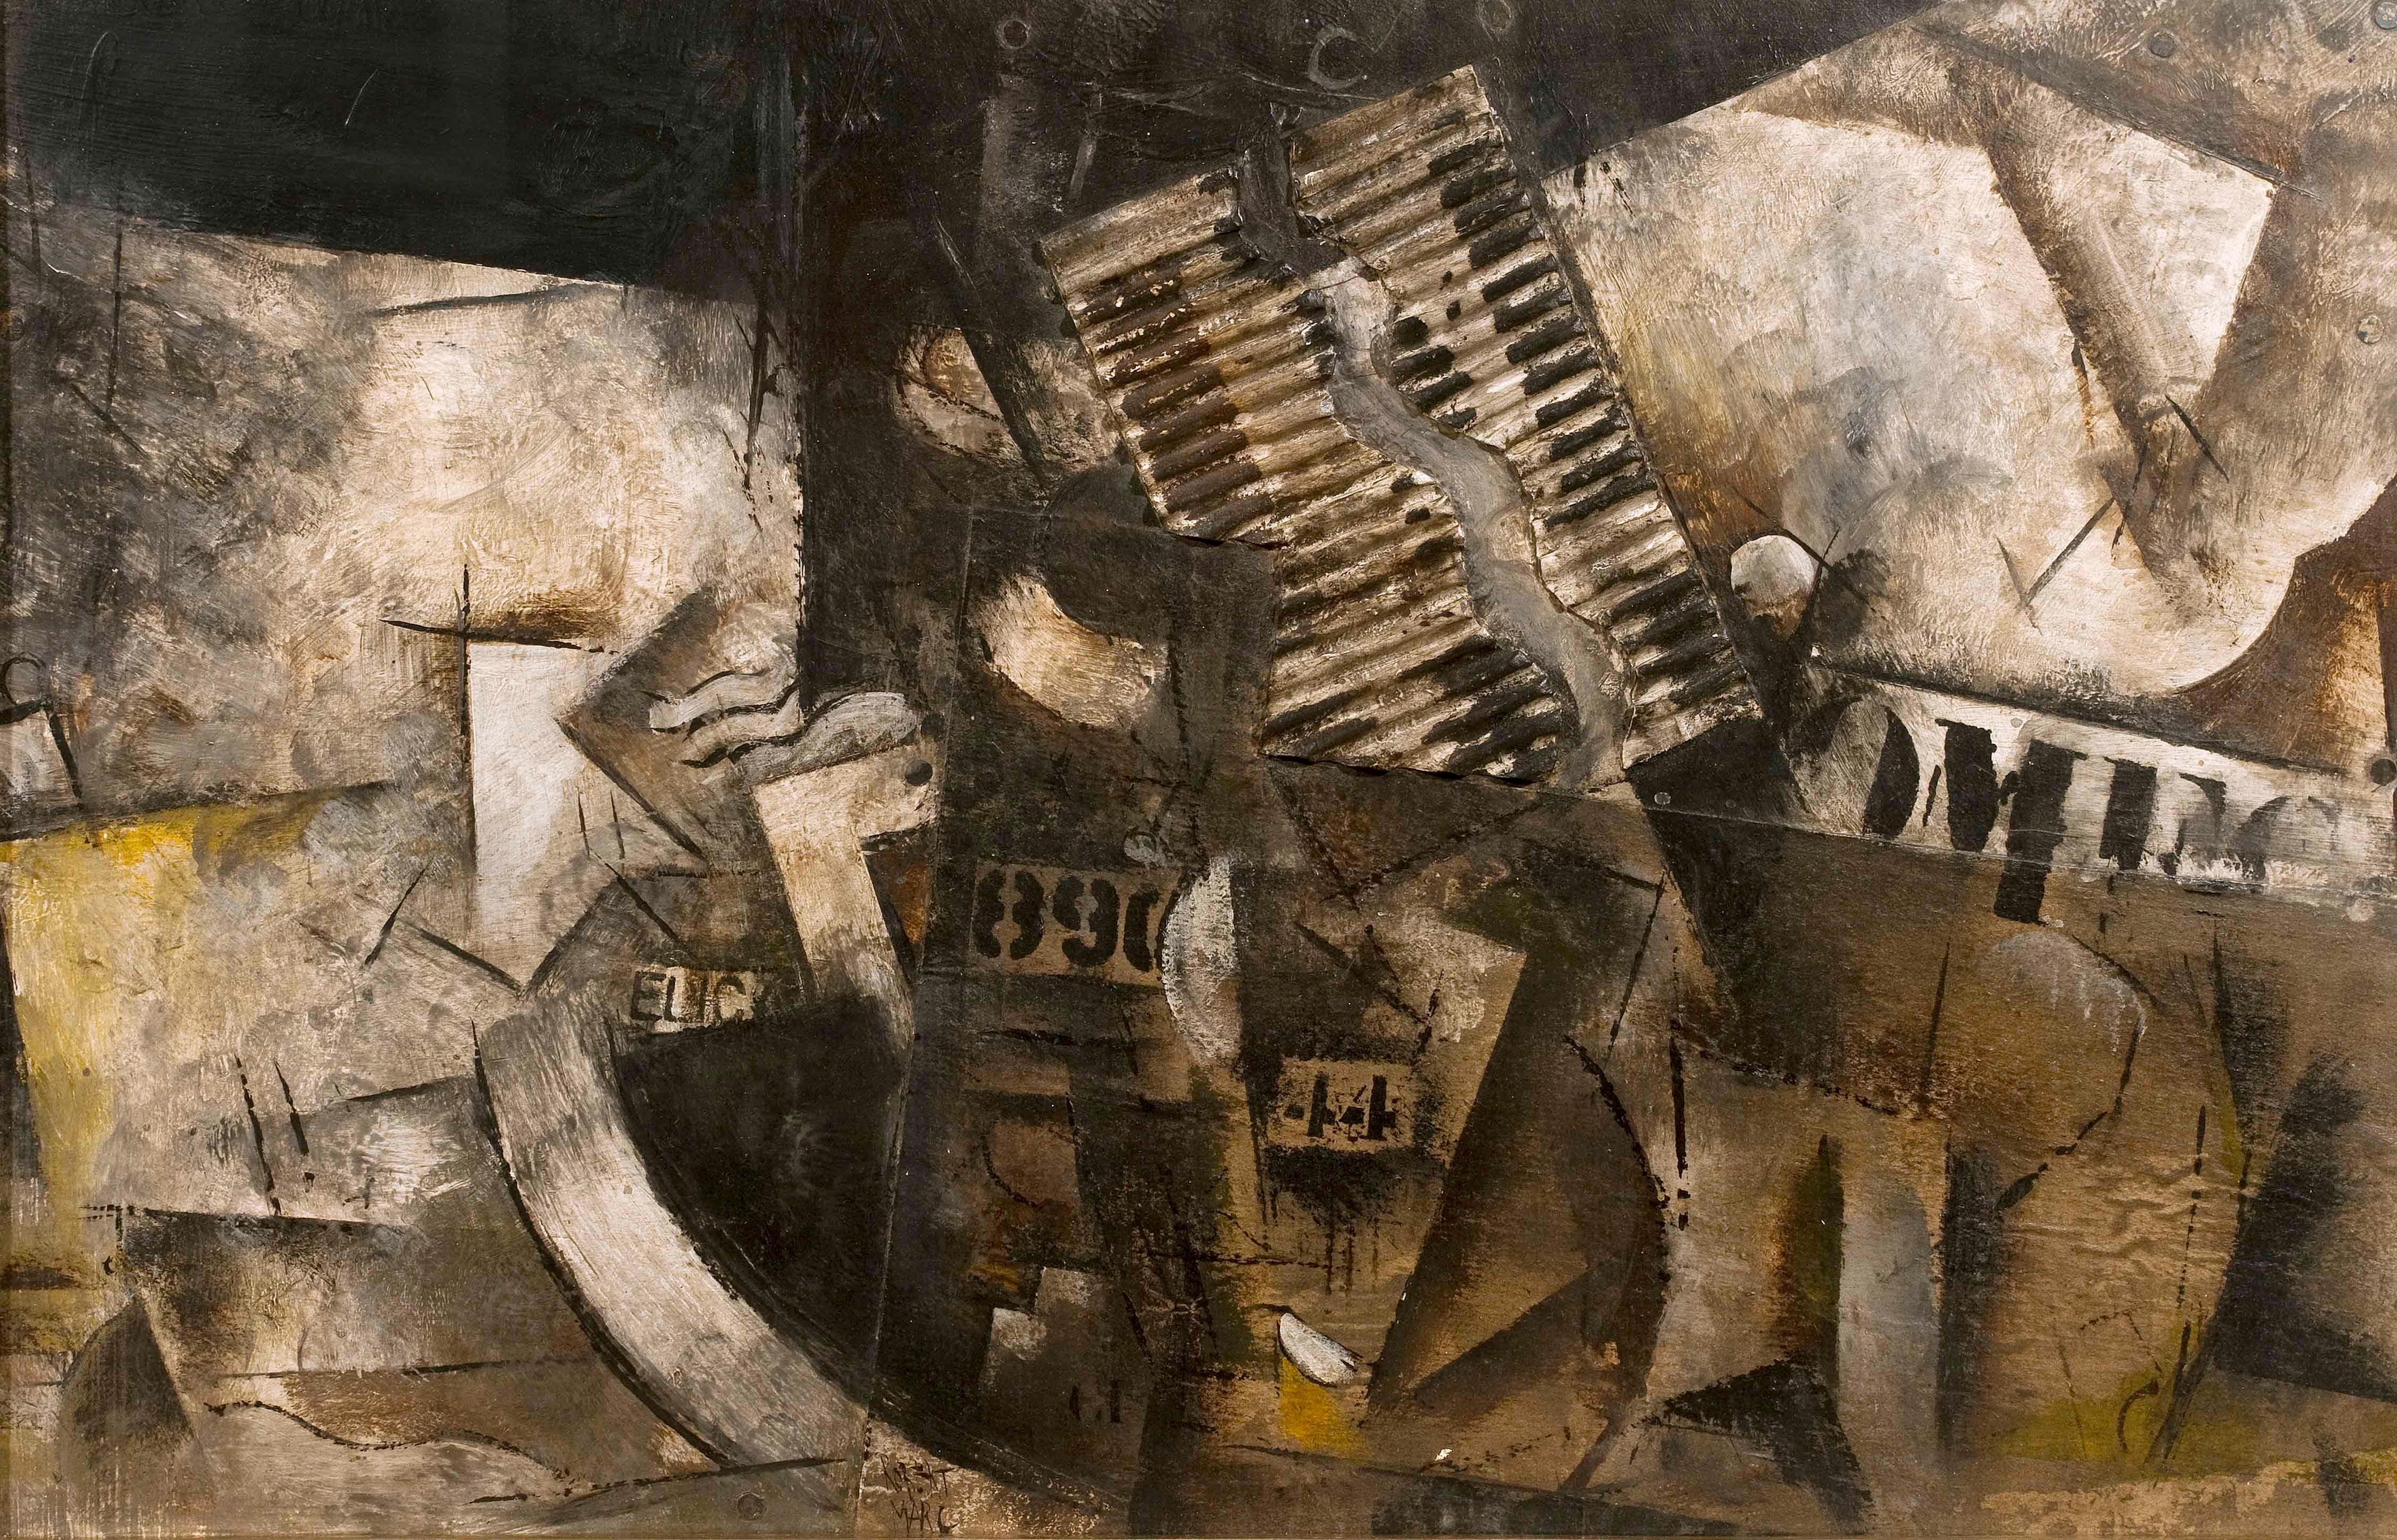 Robert Marc - Untitled (9690), cubist, post cubism, french, collage, abstract